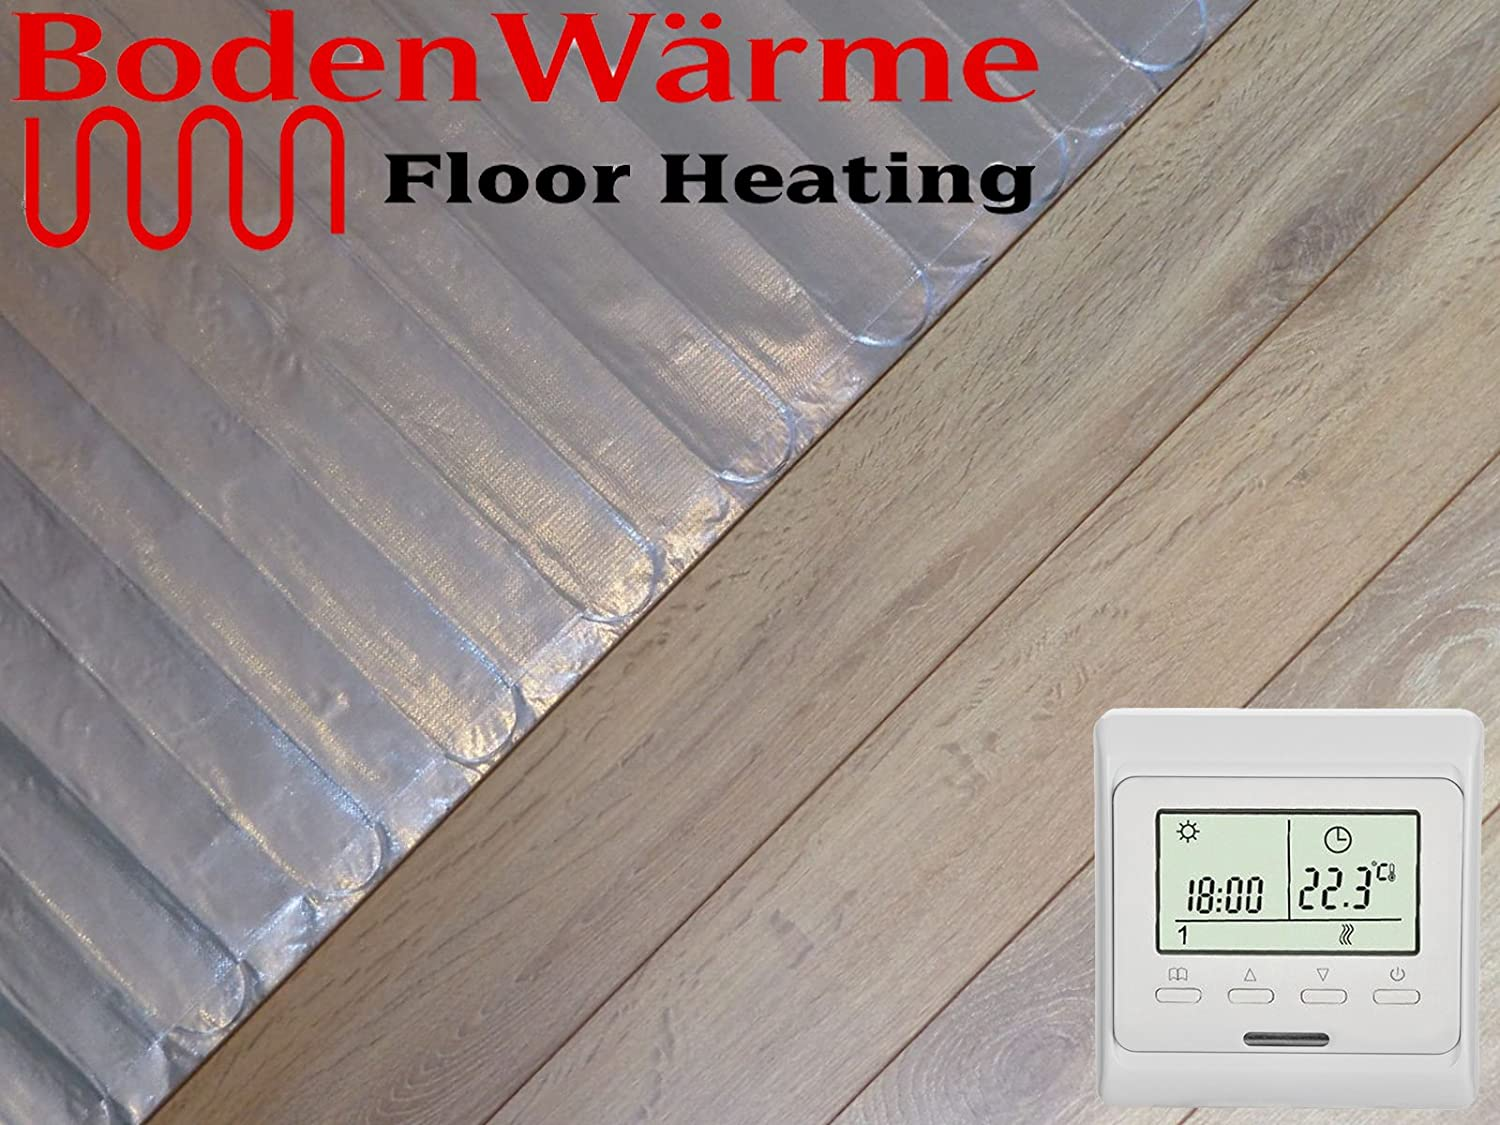 Electric Underfloor Heating kit 150w White Touch Thermostat 10.0m2